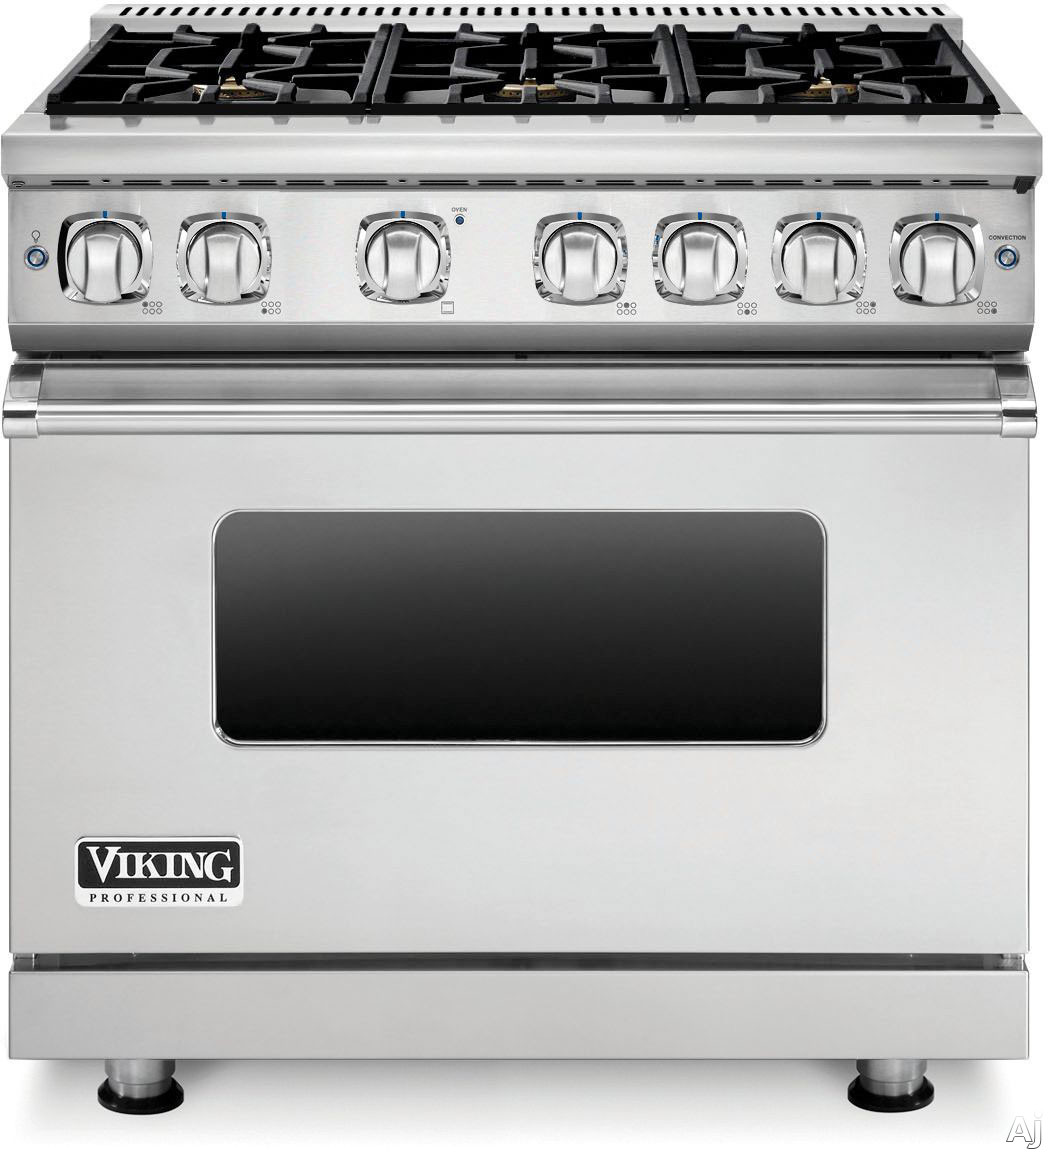 Viking Professional 7 Series VGR73616BSS 36 Inch Gas Range with 6 Sealed Burners, 5.1 cu. ft. Proflow Convection Oven, VariSimmer Setting, Gourmet Glo Infrared Broiler, GentleClose Door, TruGlide Full Extension Racks and SoftLit LED Controls: Stainless S